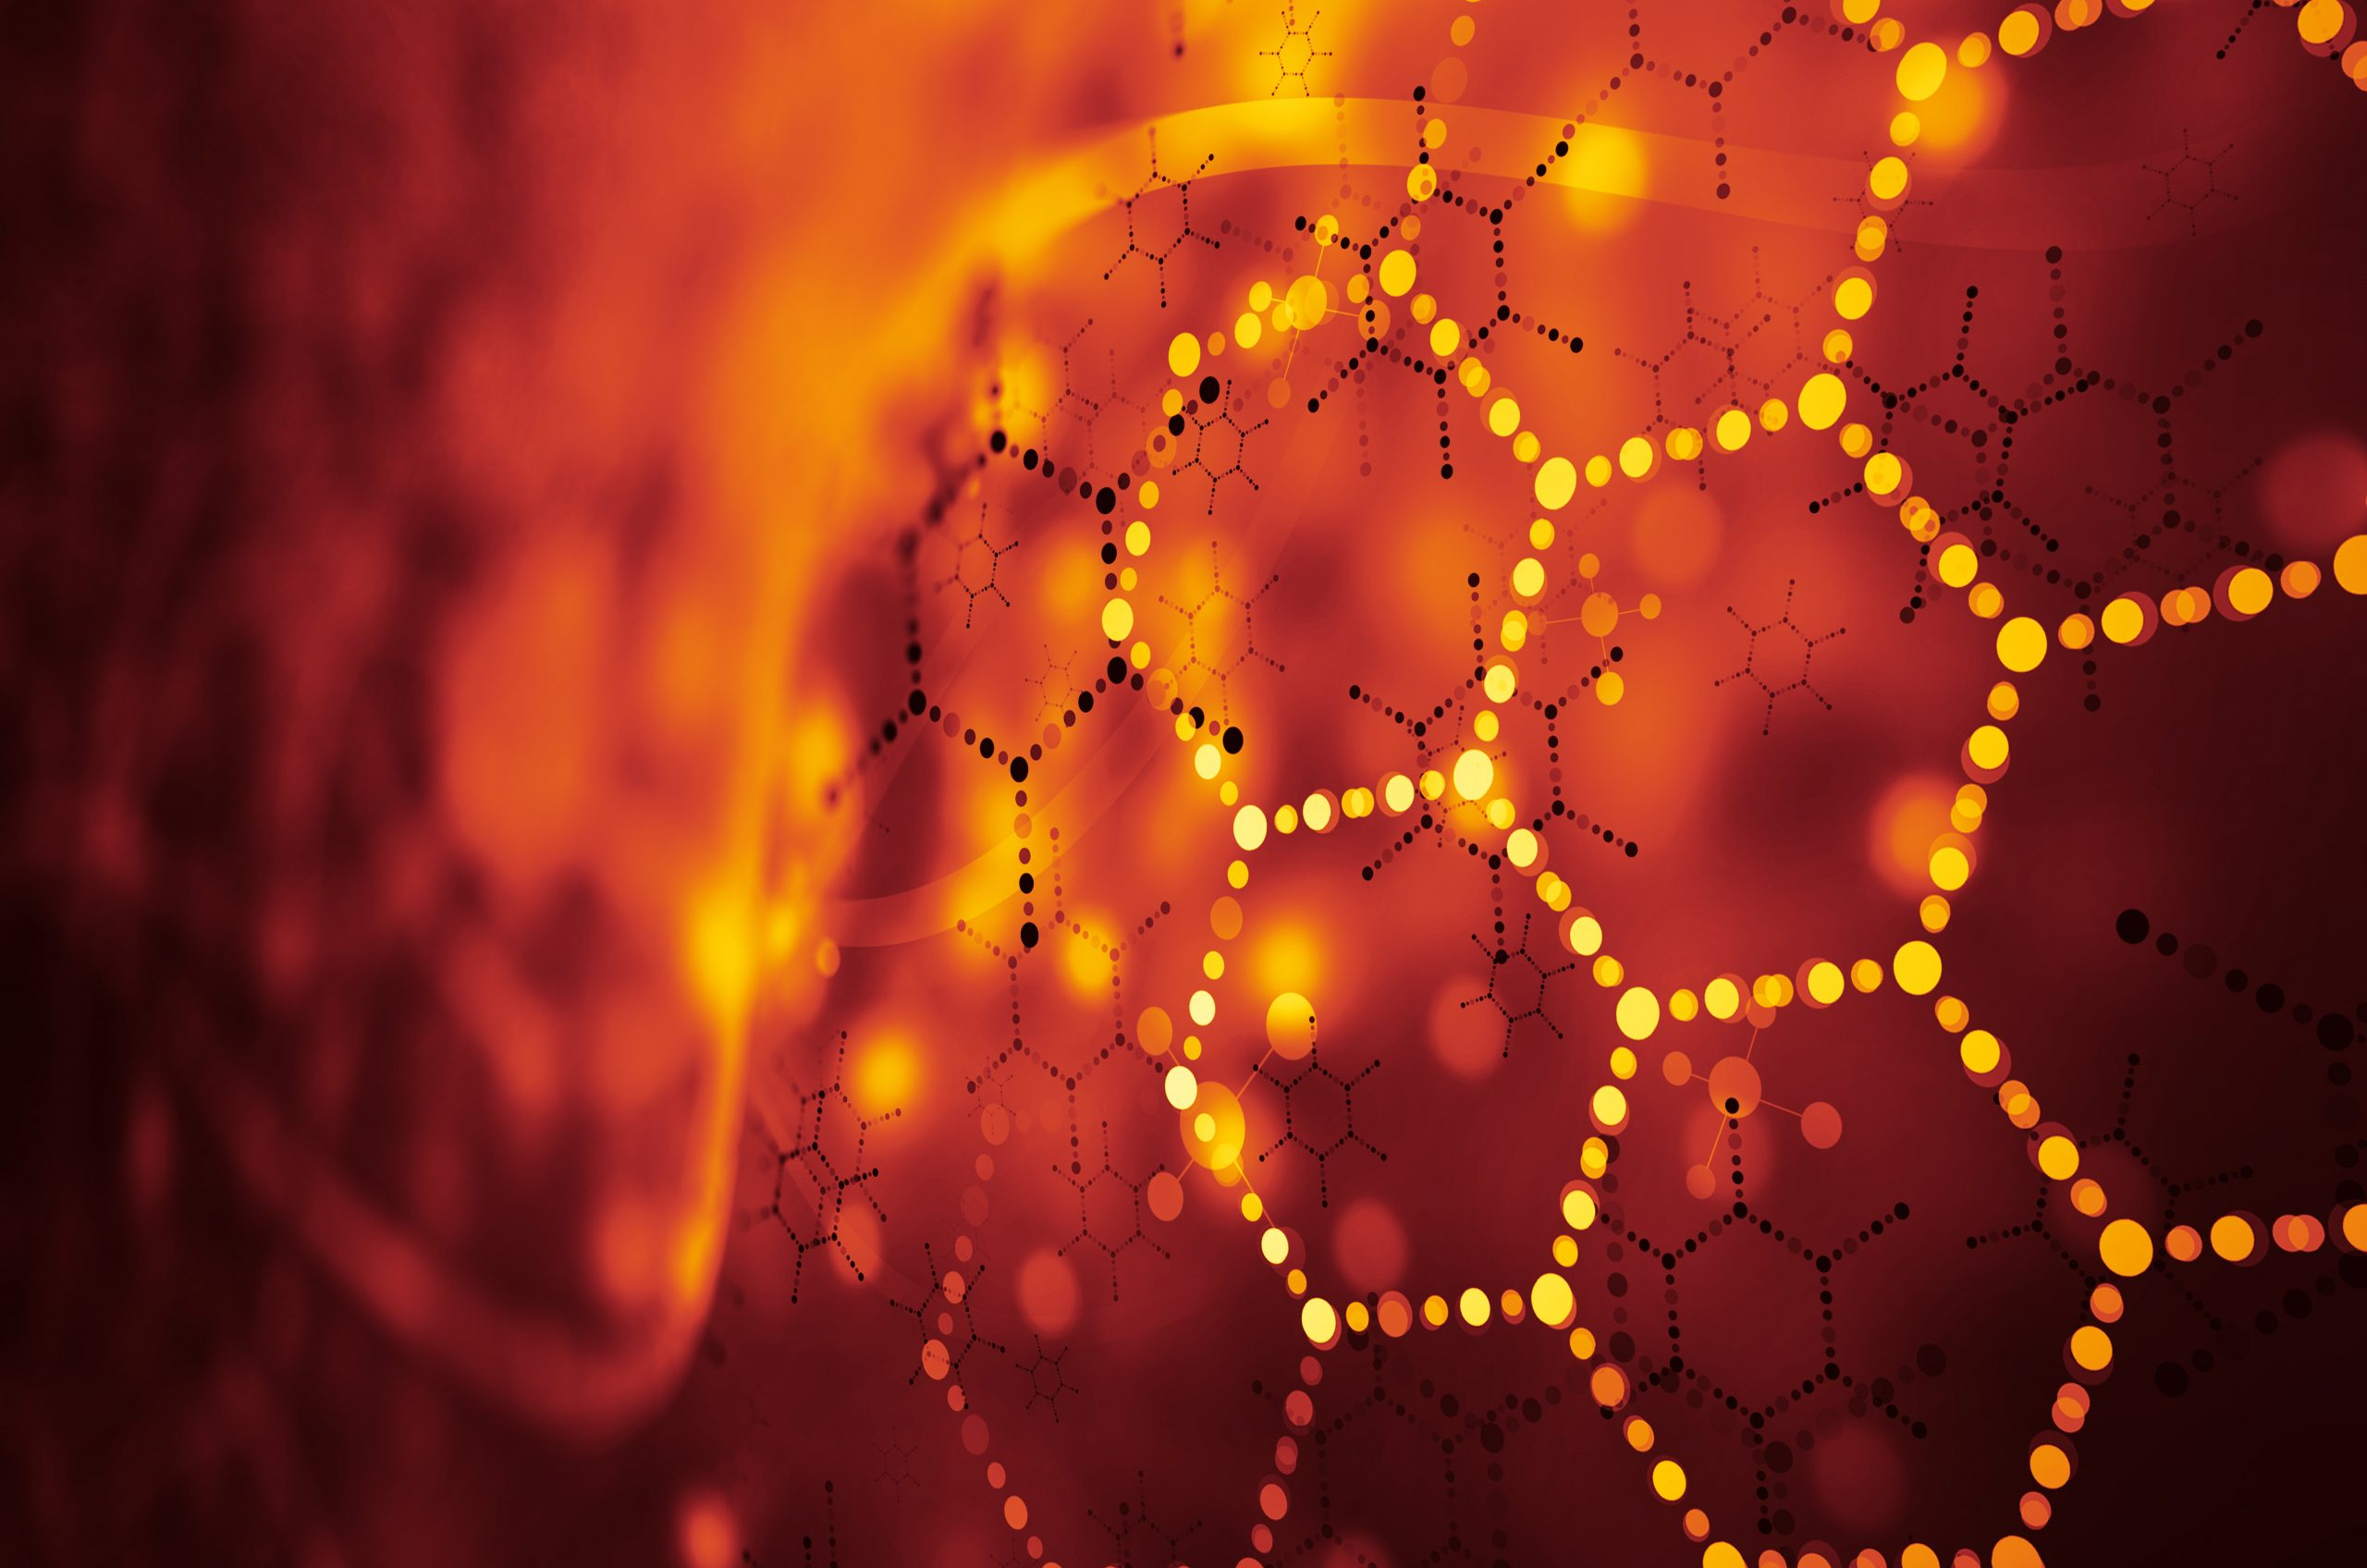 lined up orange lit dots in the shape of hexagons in an abstract